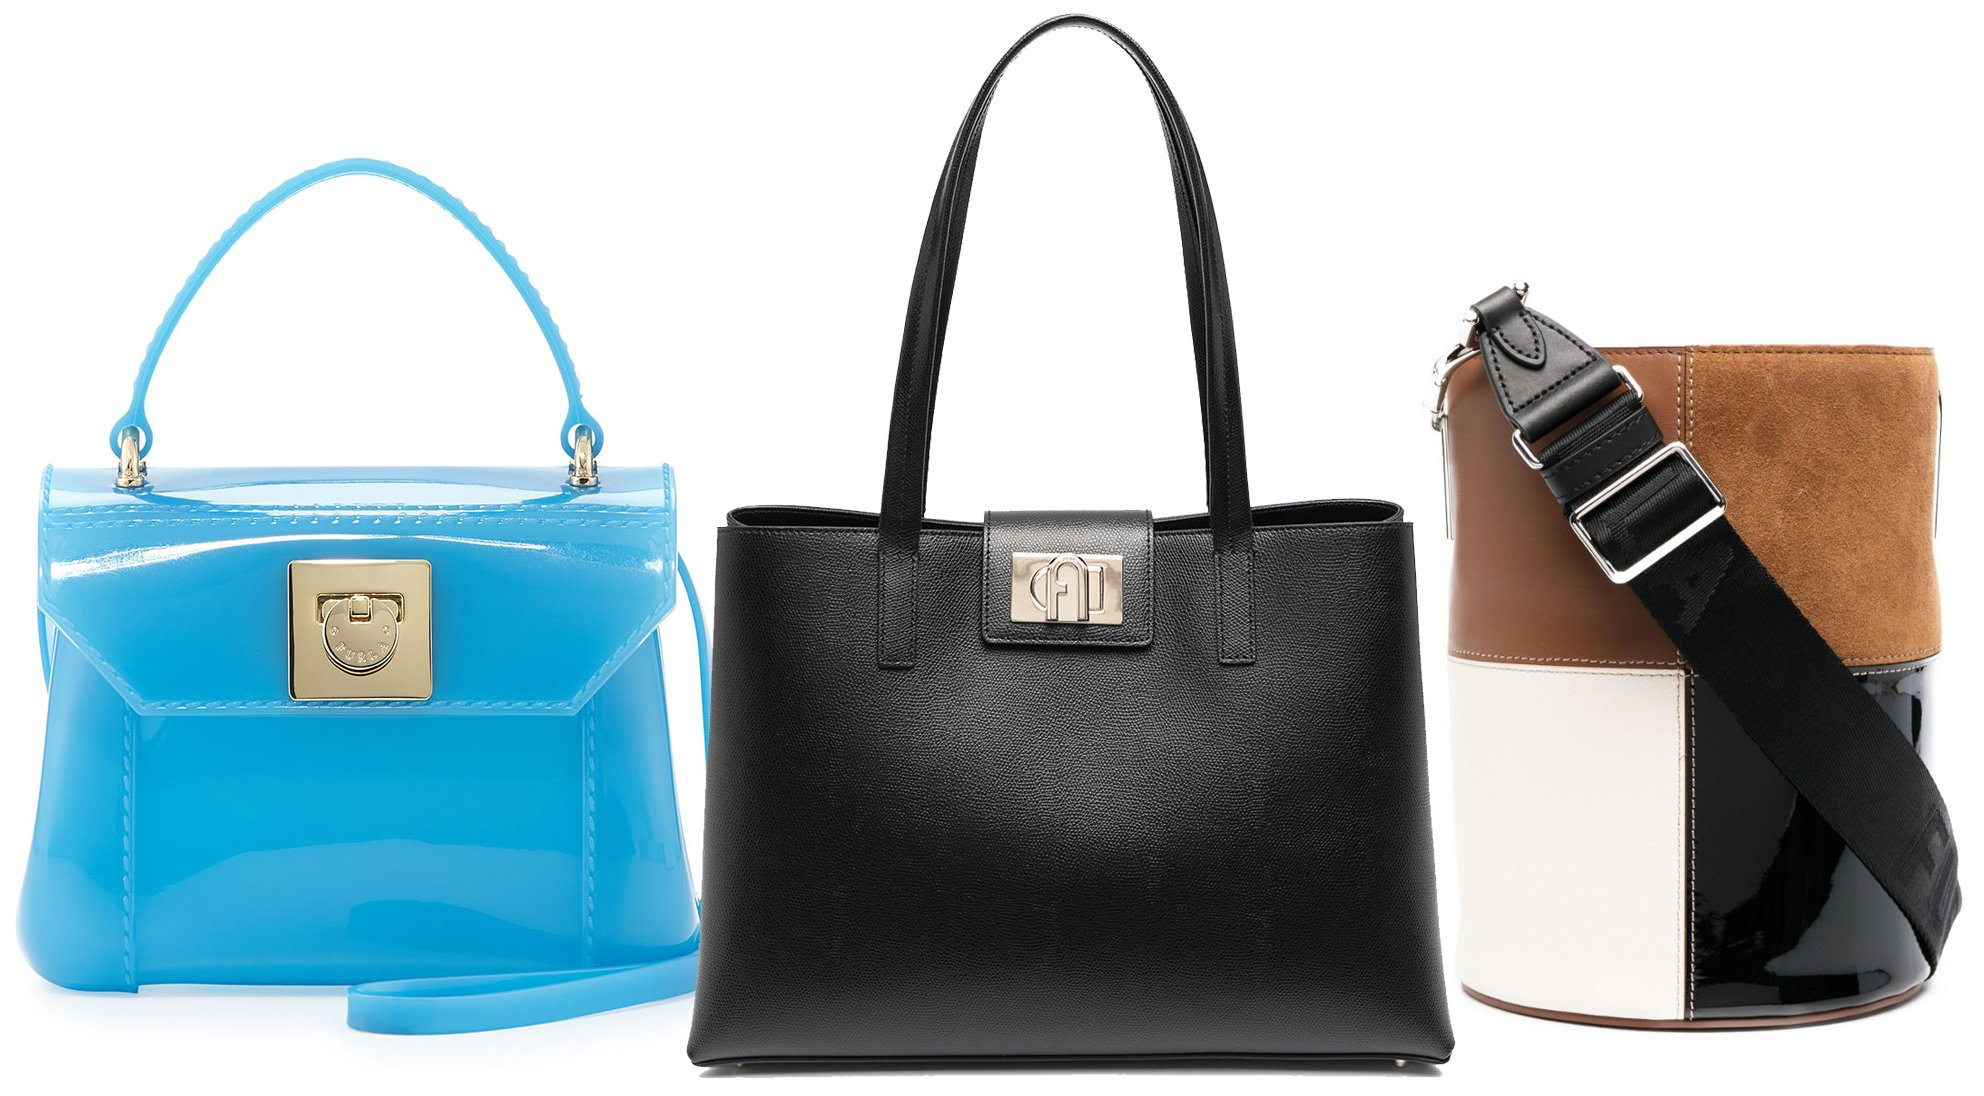 Aside from its PVC bags, Furla also has an array of bags made from genuine leather